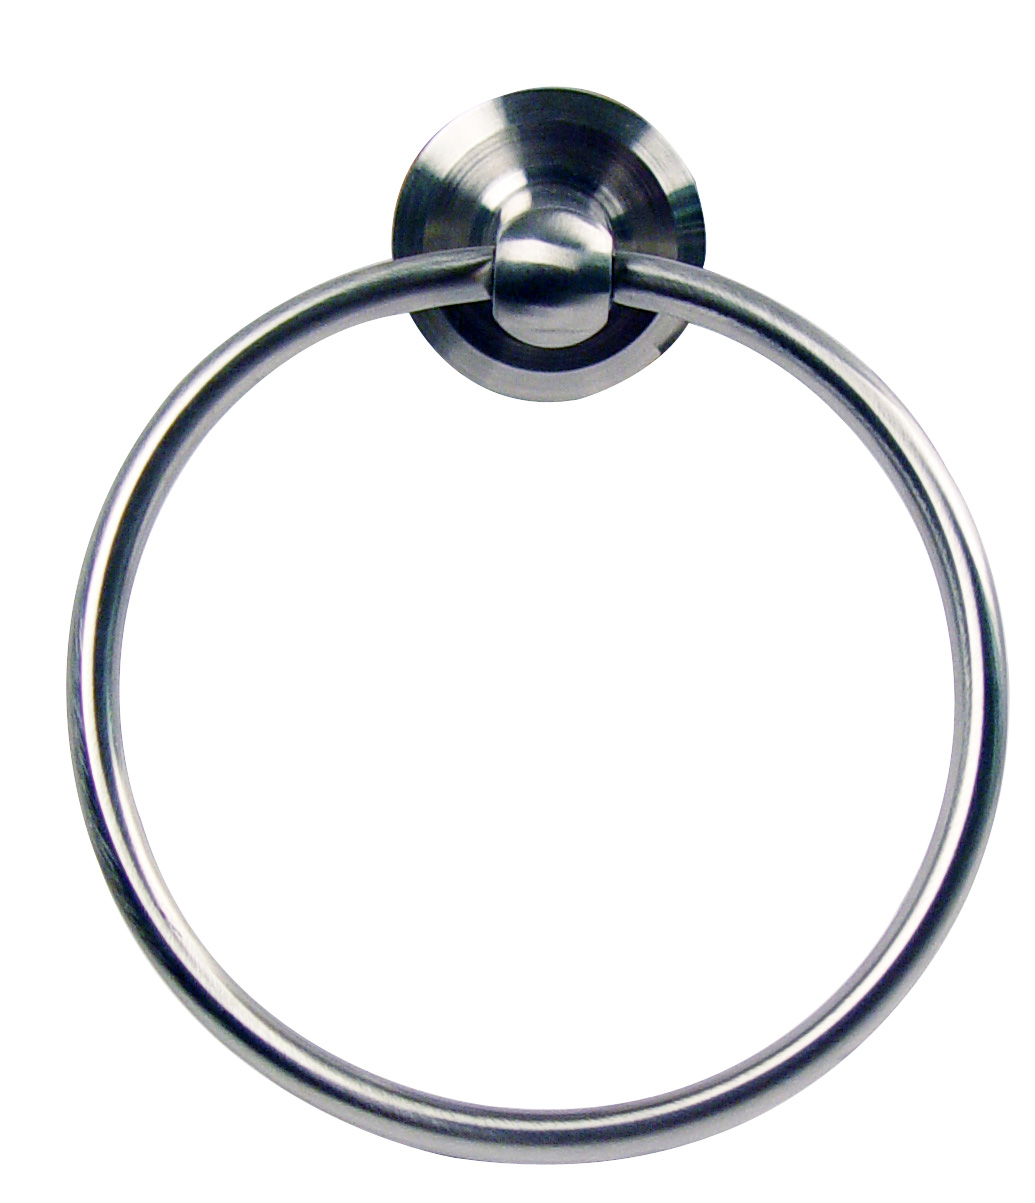 Amazing Bathroom Towel Rings 1035 x 1203 · 194 kB · jpeg